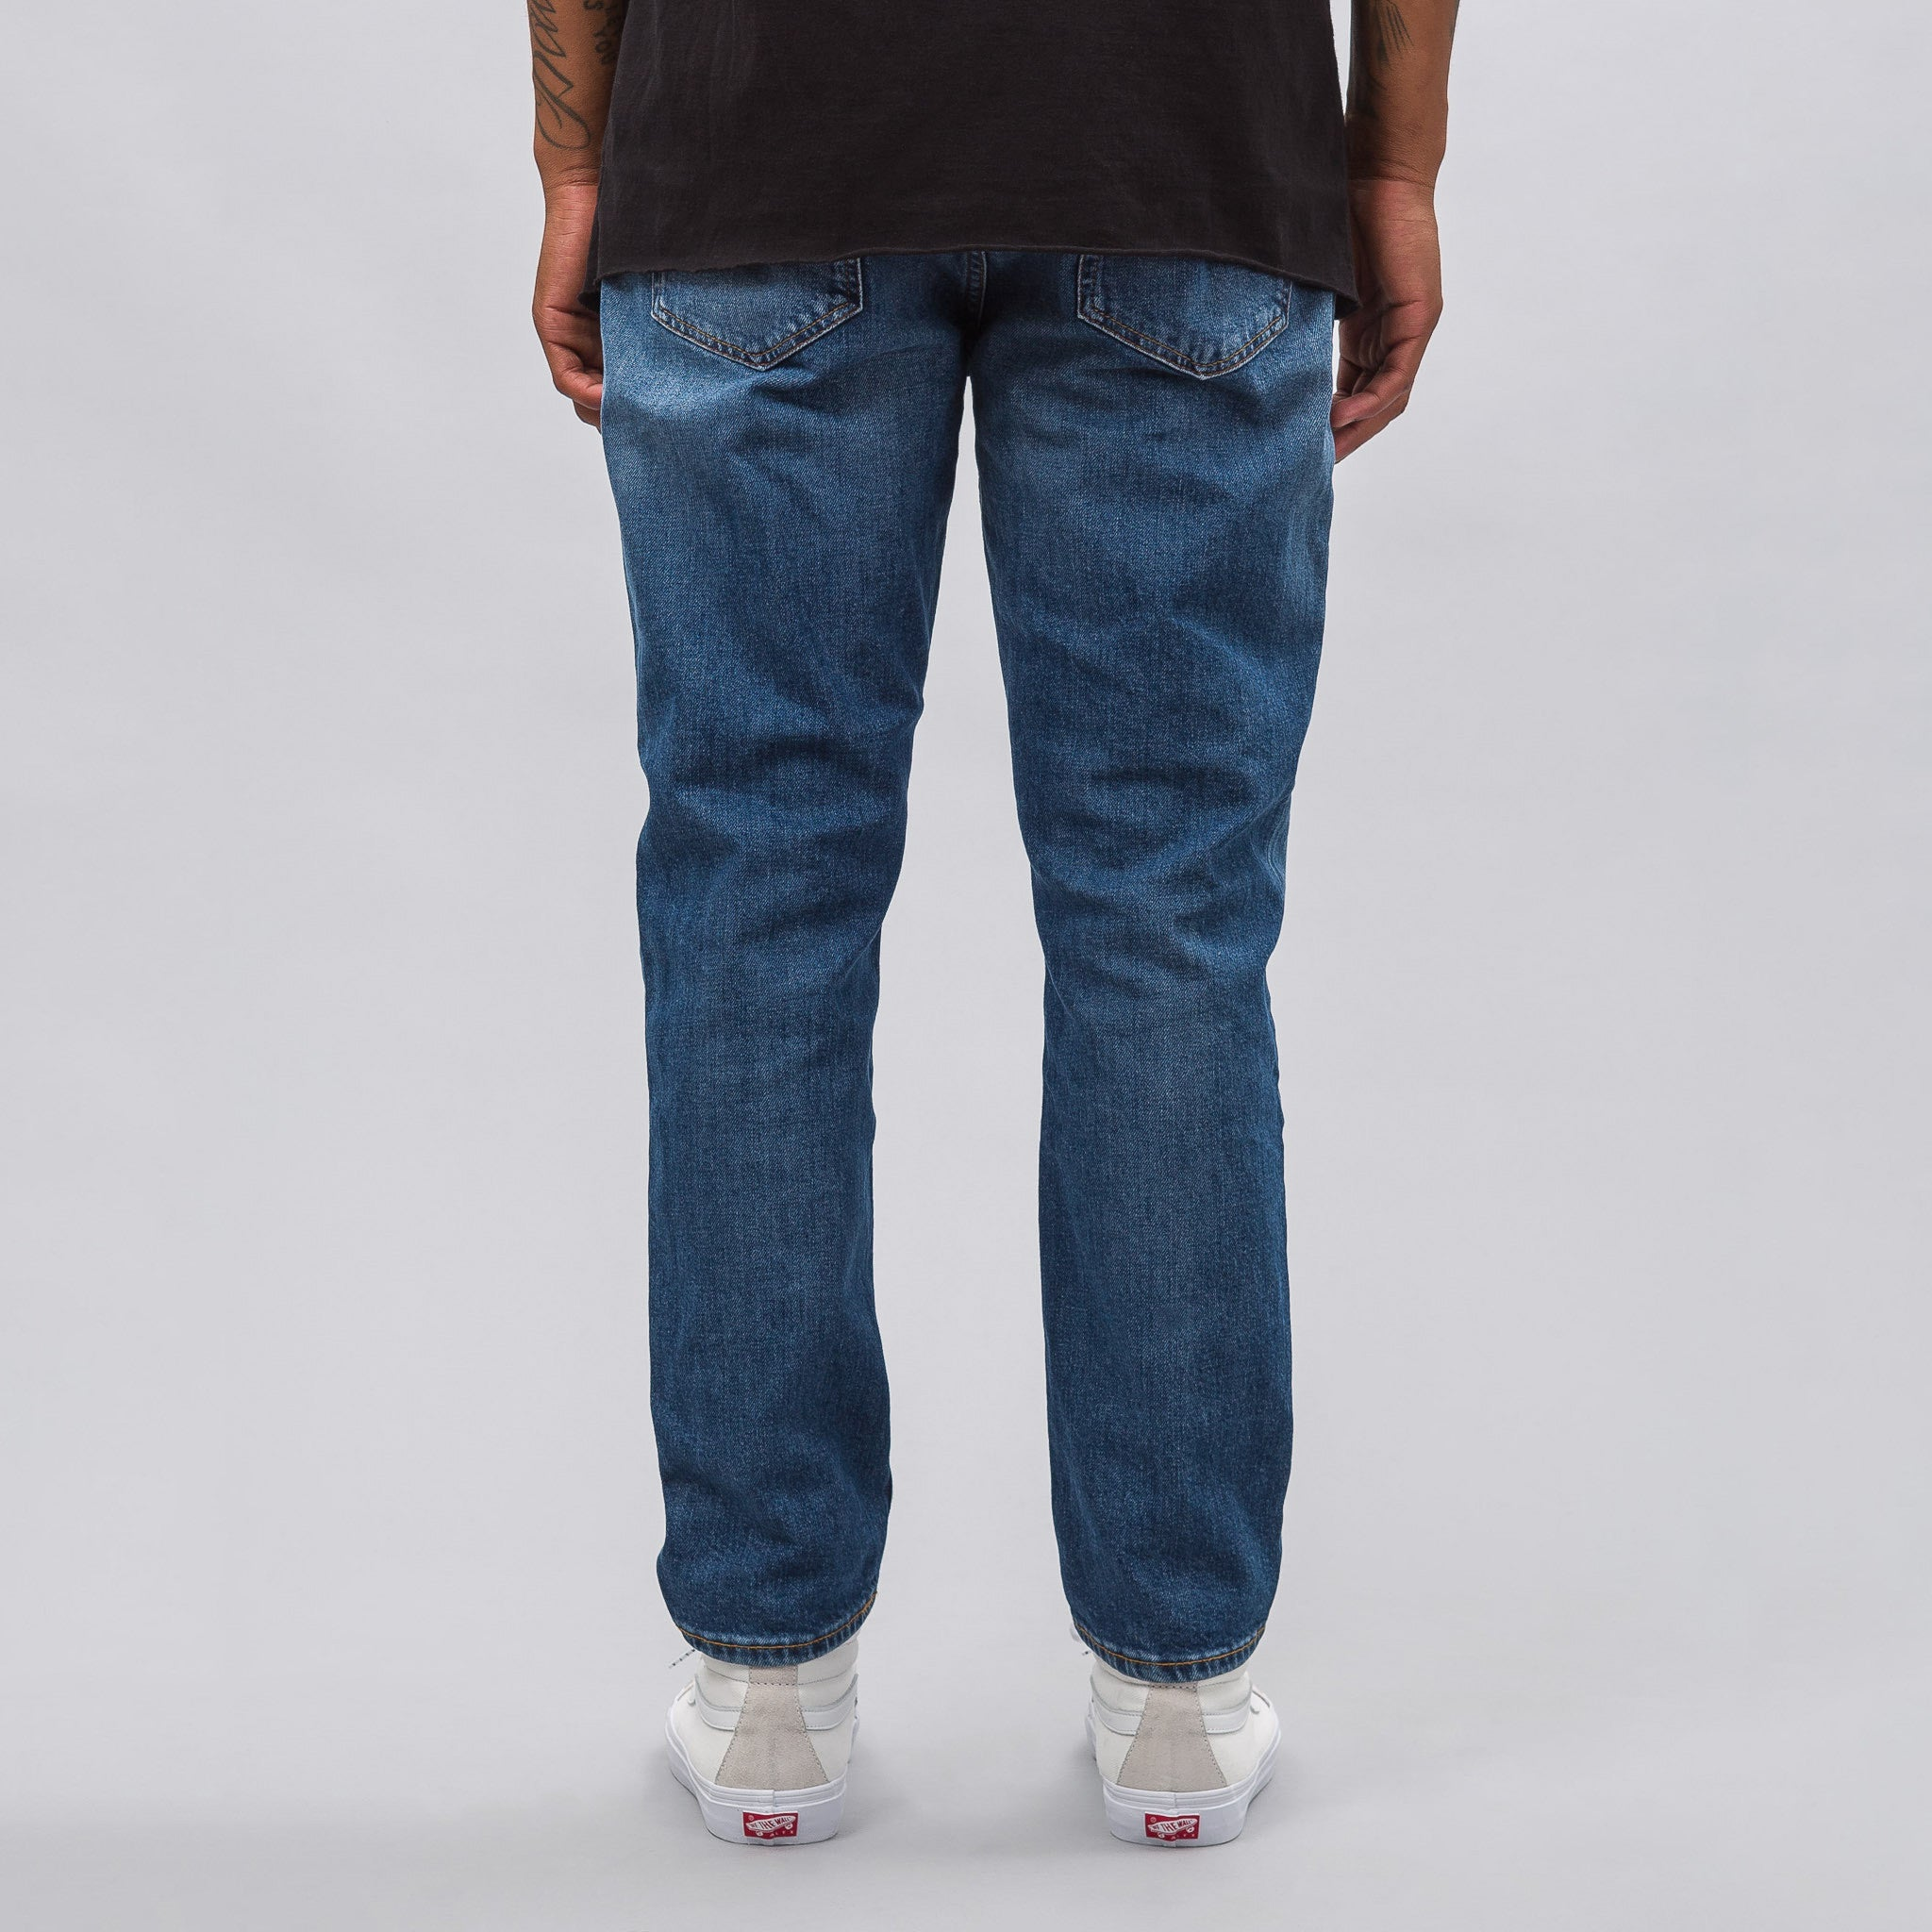 7a8966cdf9b Acne Studios River Mid Denim in Blue 1